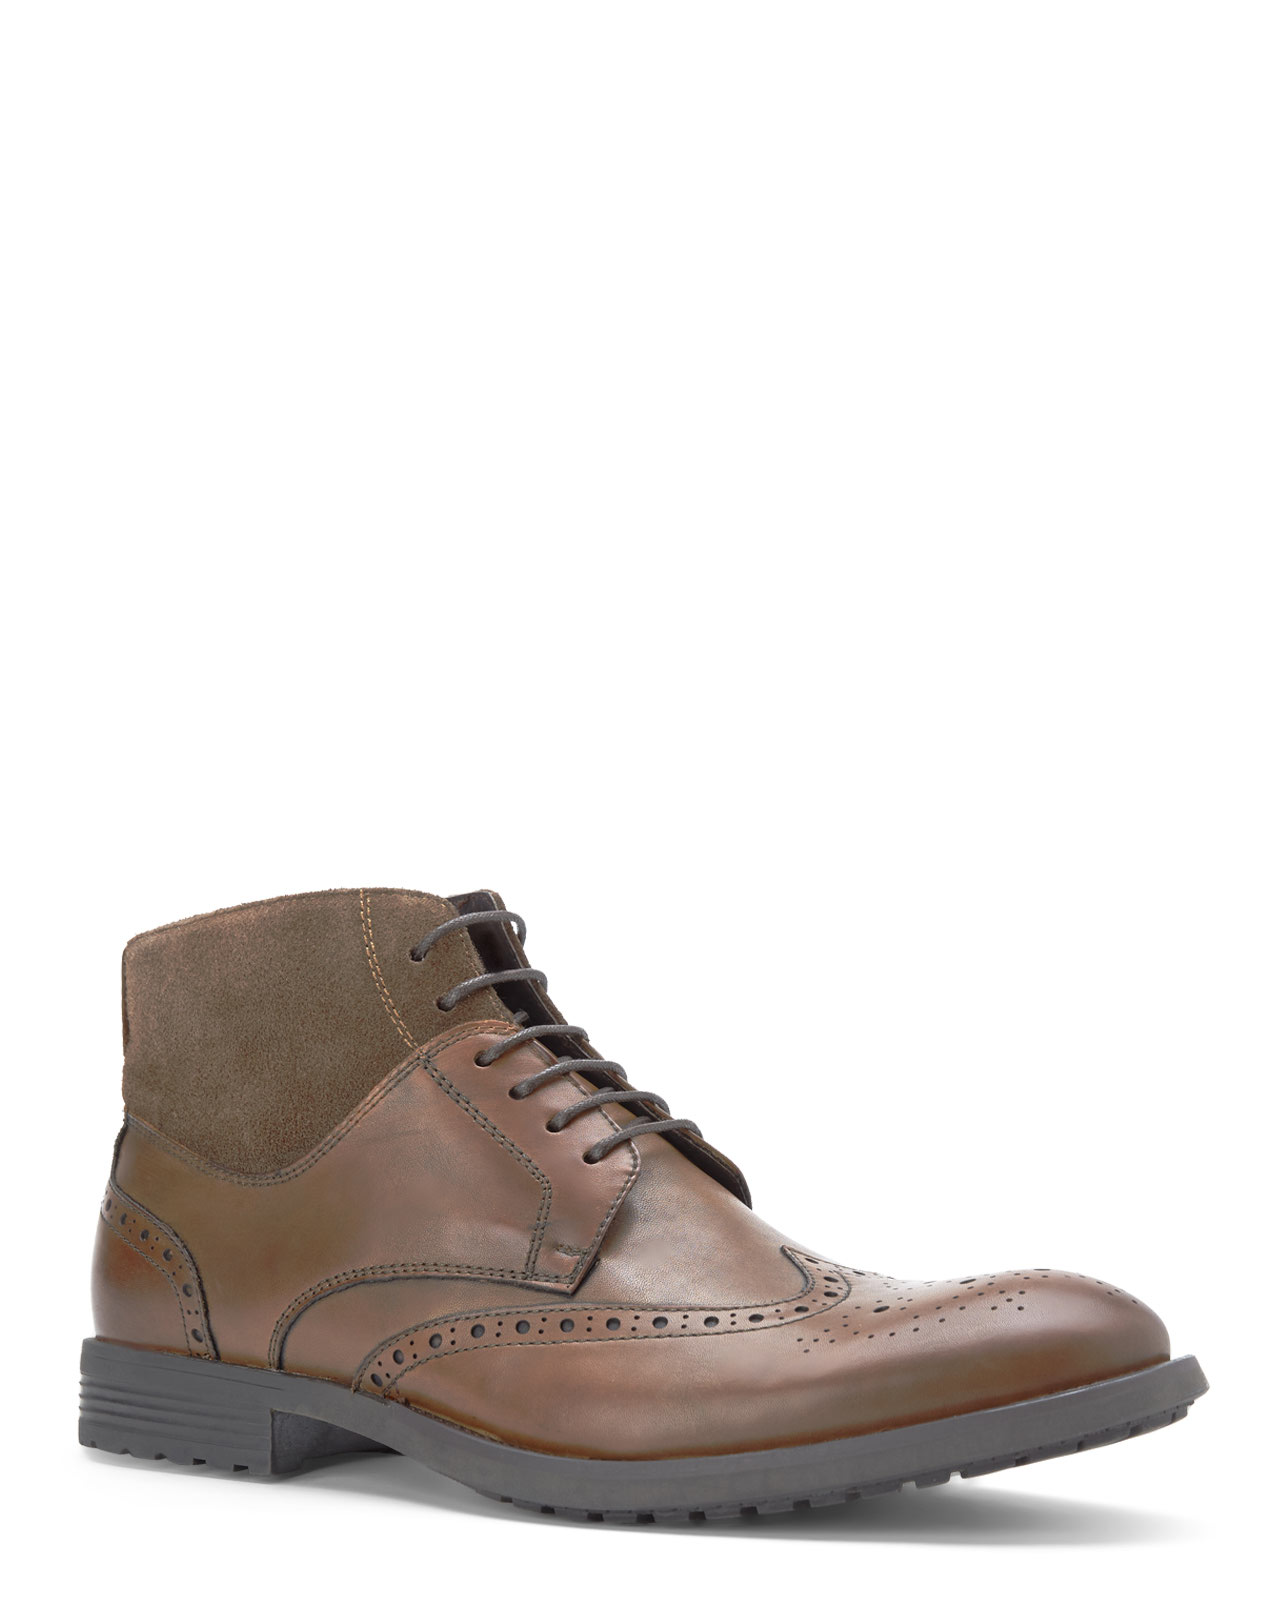 VINCE CAMUTO Brown Dario Wingtip Boots | Shop Men's Clothing & Accessories | Century 21 Department Store | Century 21 Department Store